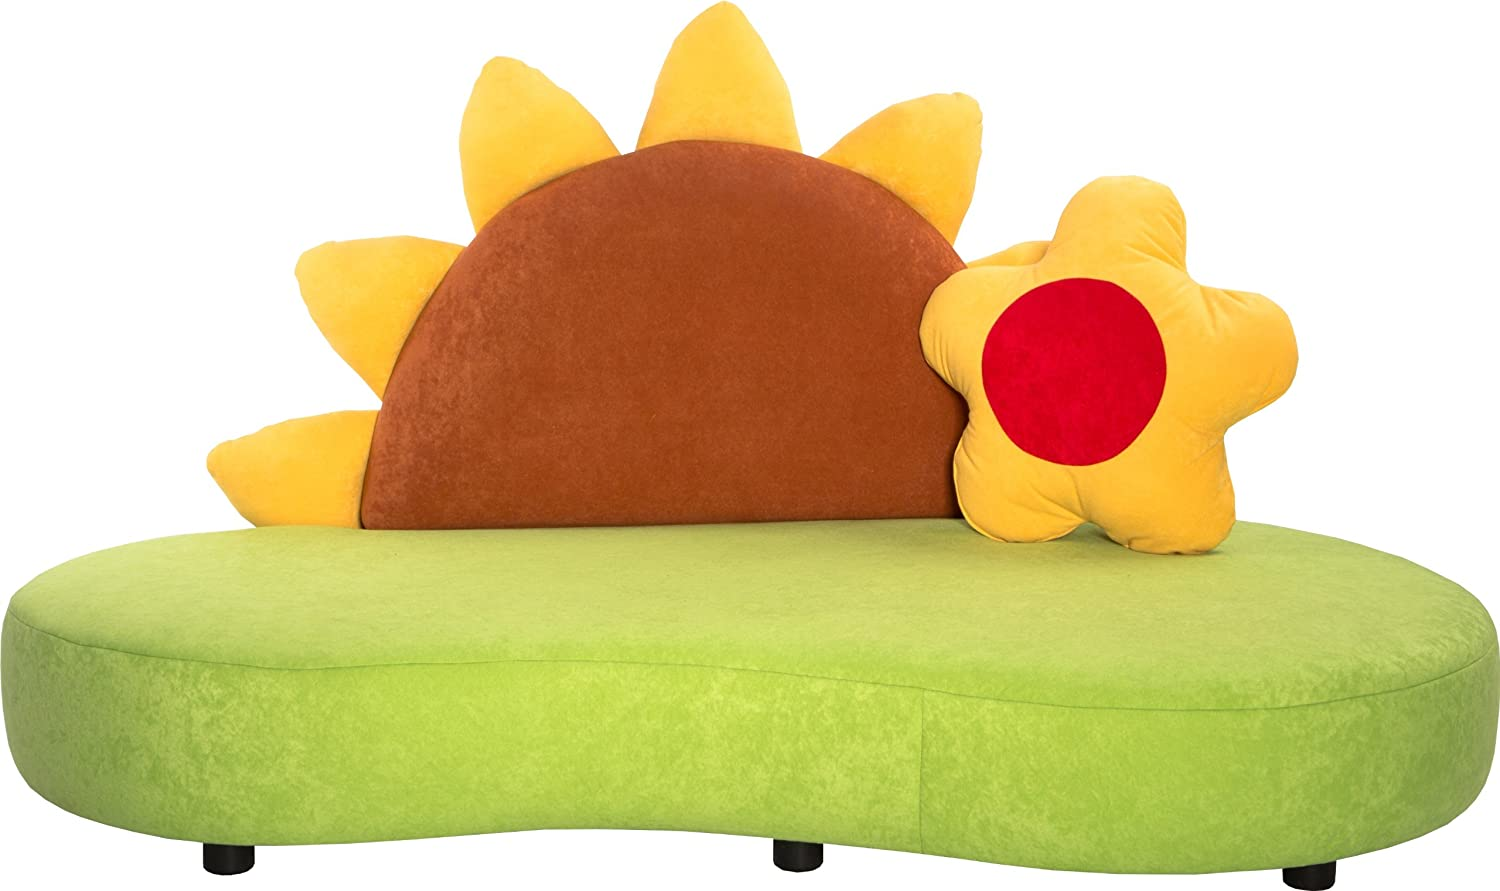 "Kindersofa / Kinder – Couch Kuschelinsel ""Blume"" Made in Germany Handarbeit günstig"